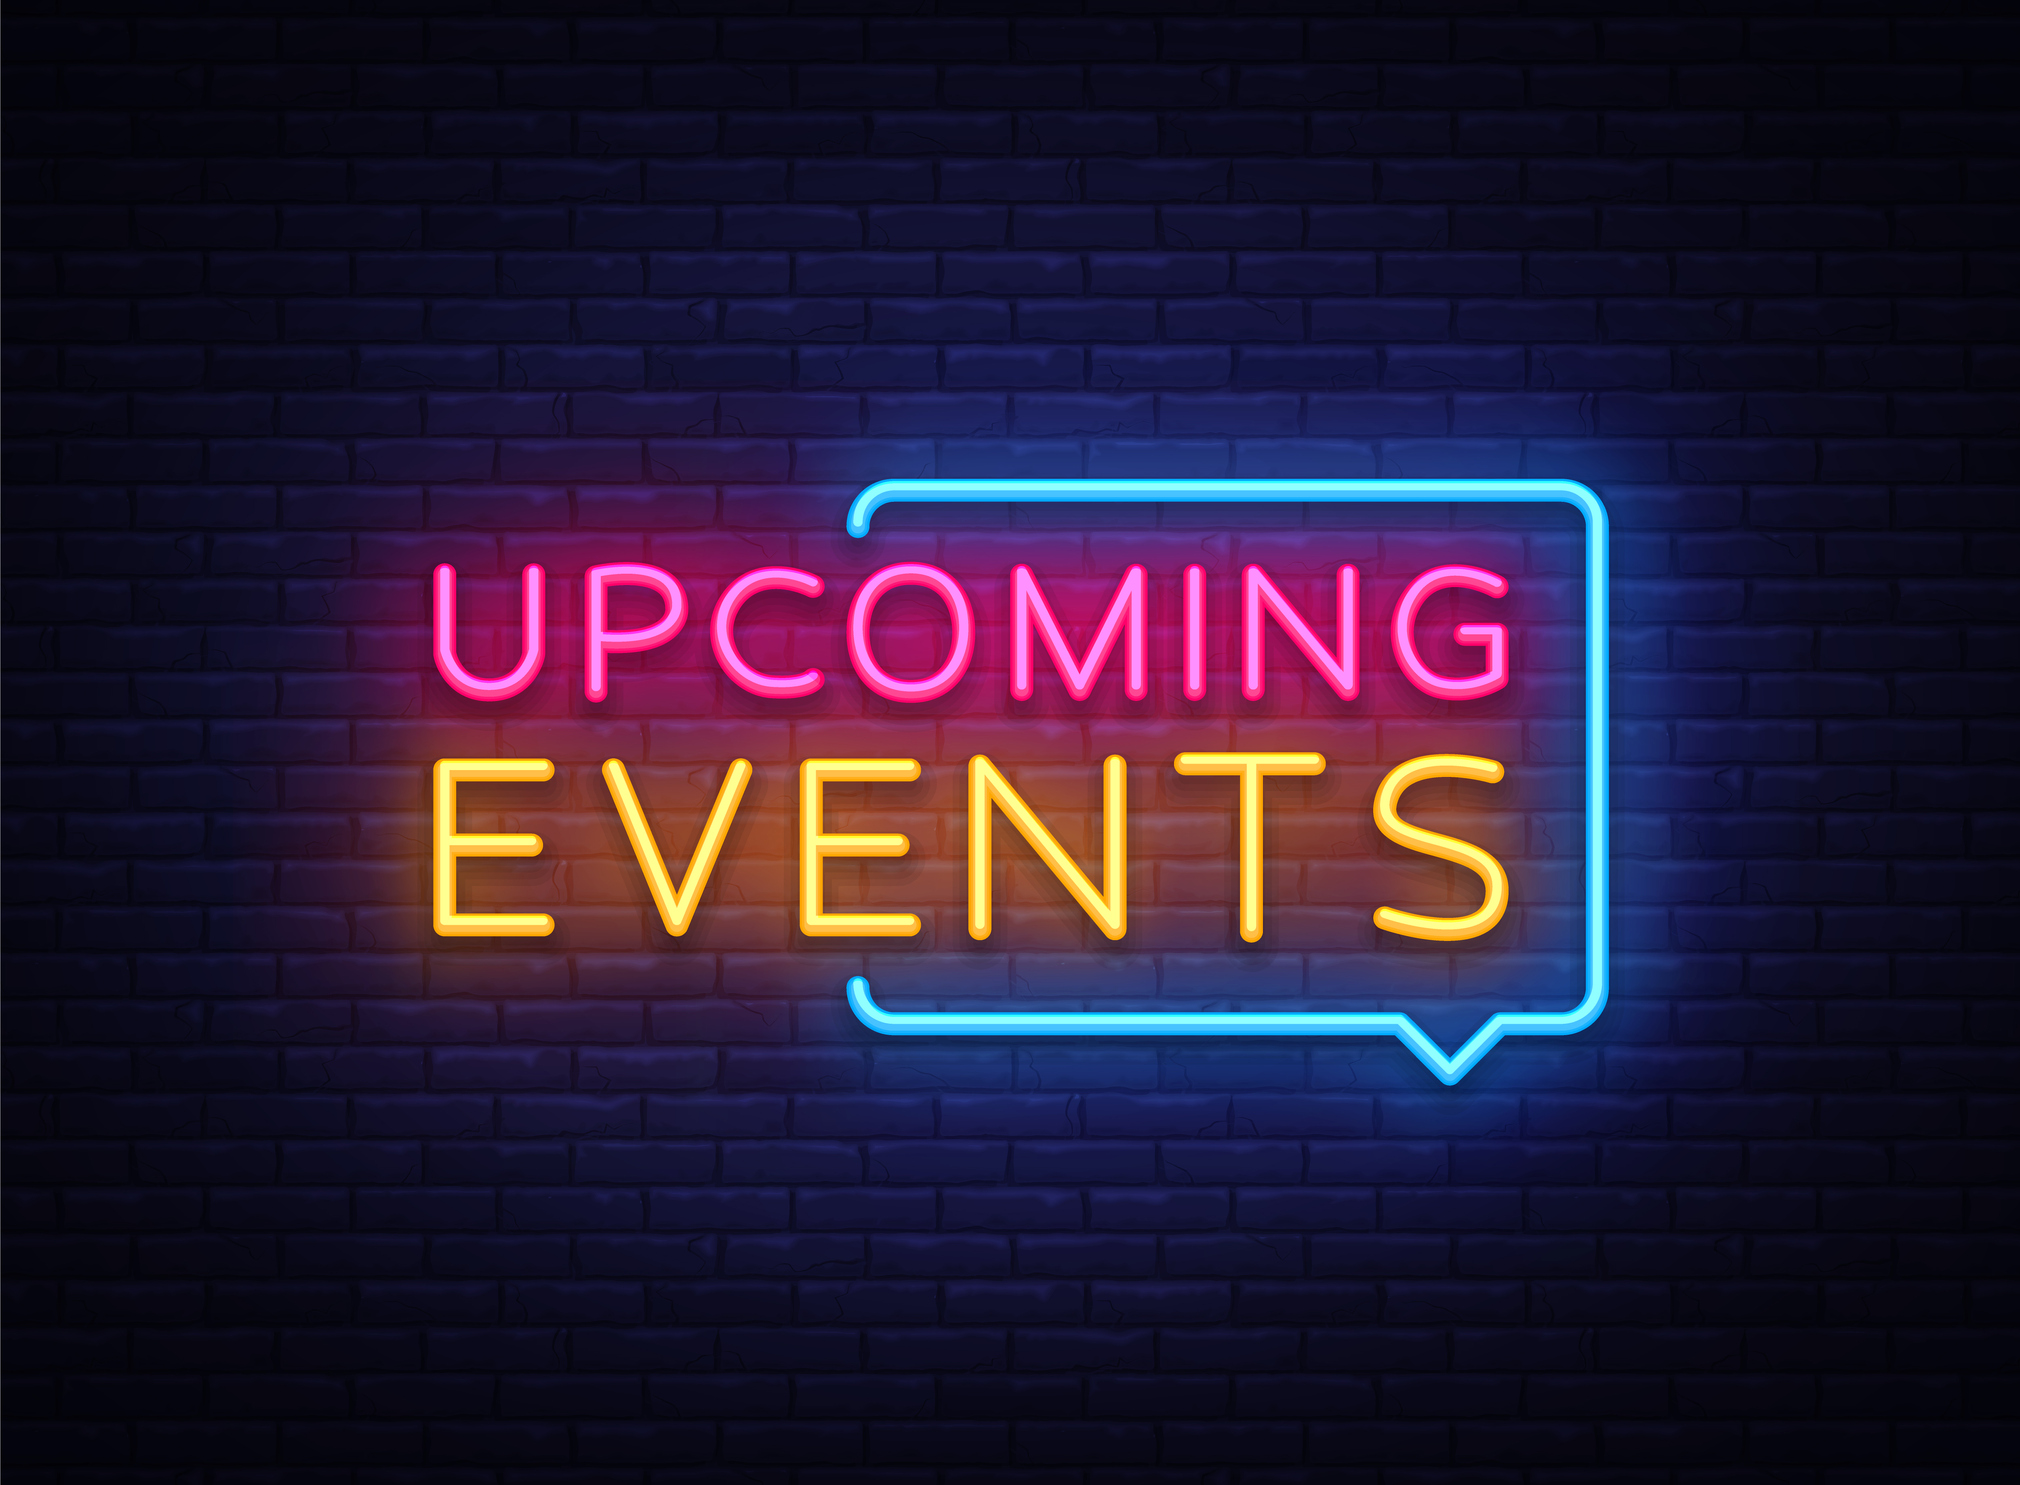 Follow The Food Truck - Like us on Facebook, Follow us on Instagram, Love us in person and stay connected! Our calendar is updated daily with event information and location.